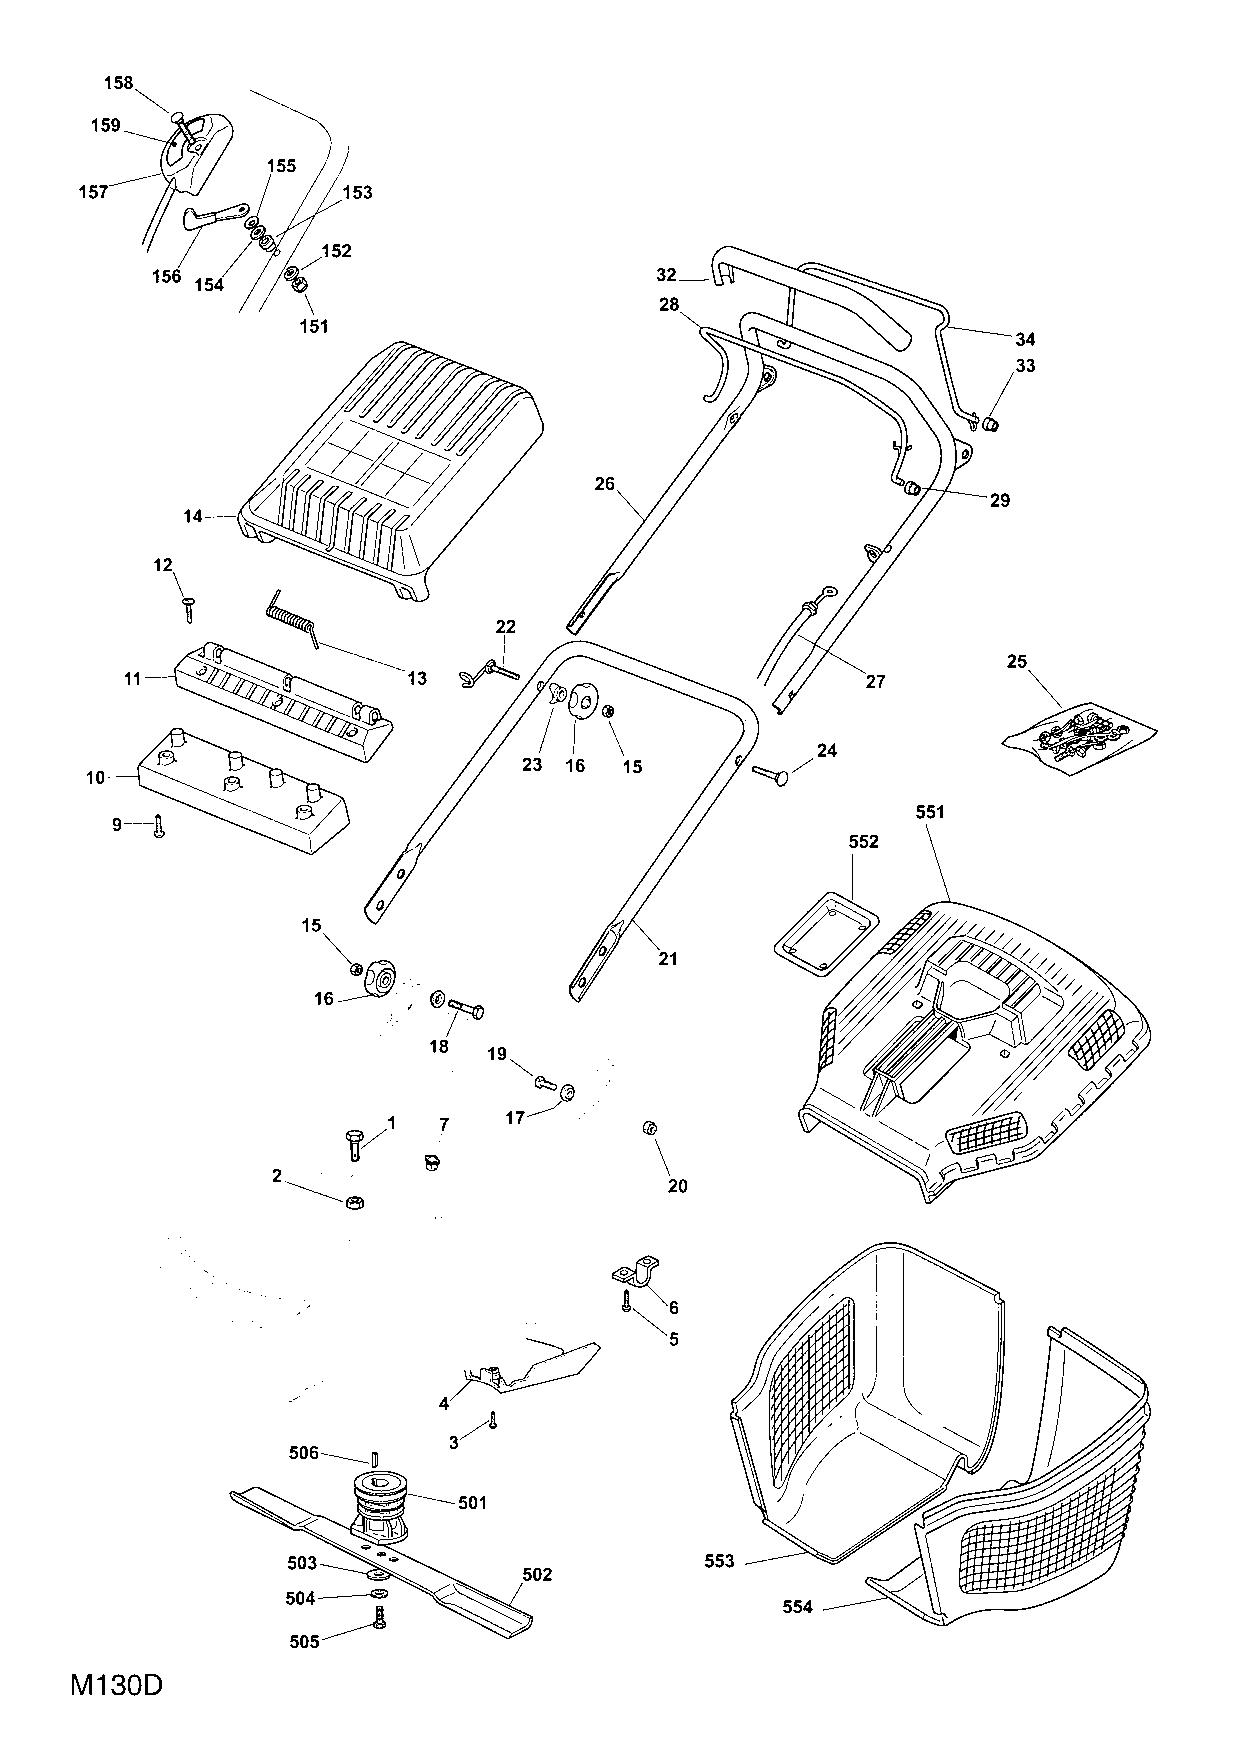 qualcast classic 35s parts diagram yamaha wiring diagrams mountfield 534 sp 2007 spare spares and